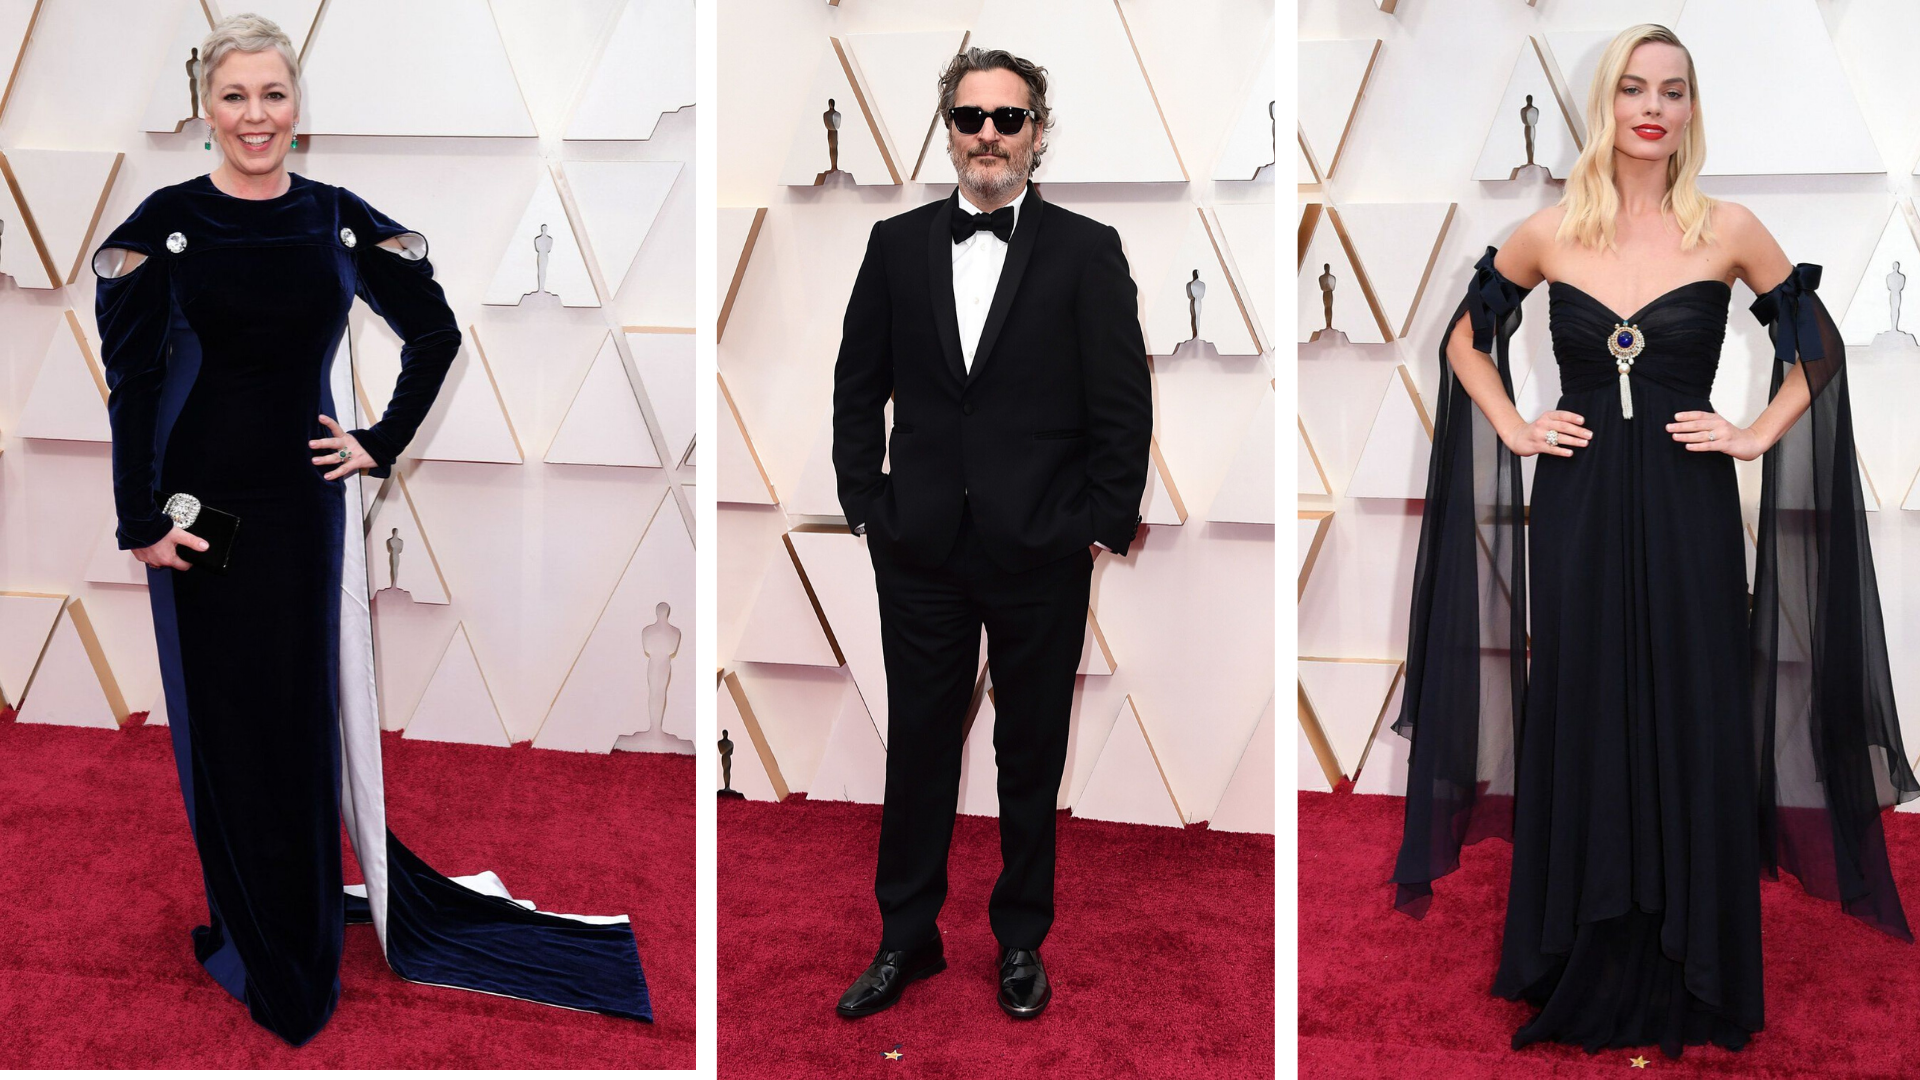 Sustainable Fashion Takes Over The Oscars Red Carpet